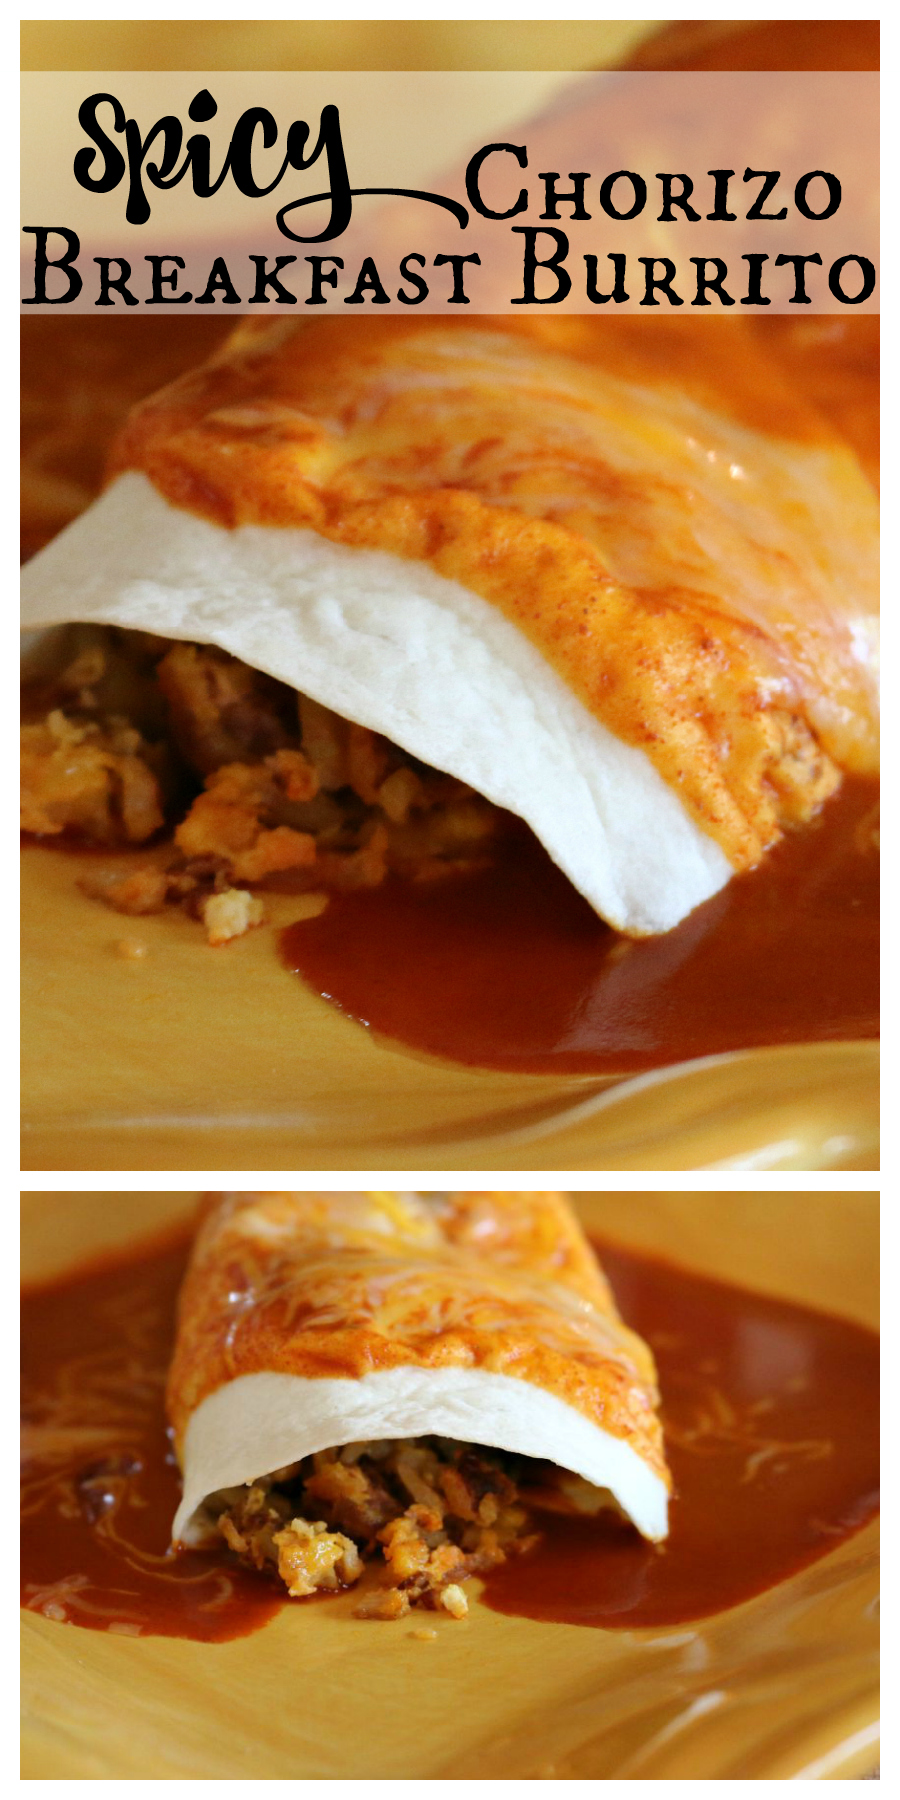 Spicy Chorizo Breakfast Burrito Recipe CeceliasGoodStuff.com Good Food for Good People